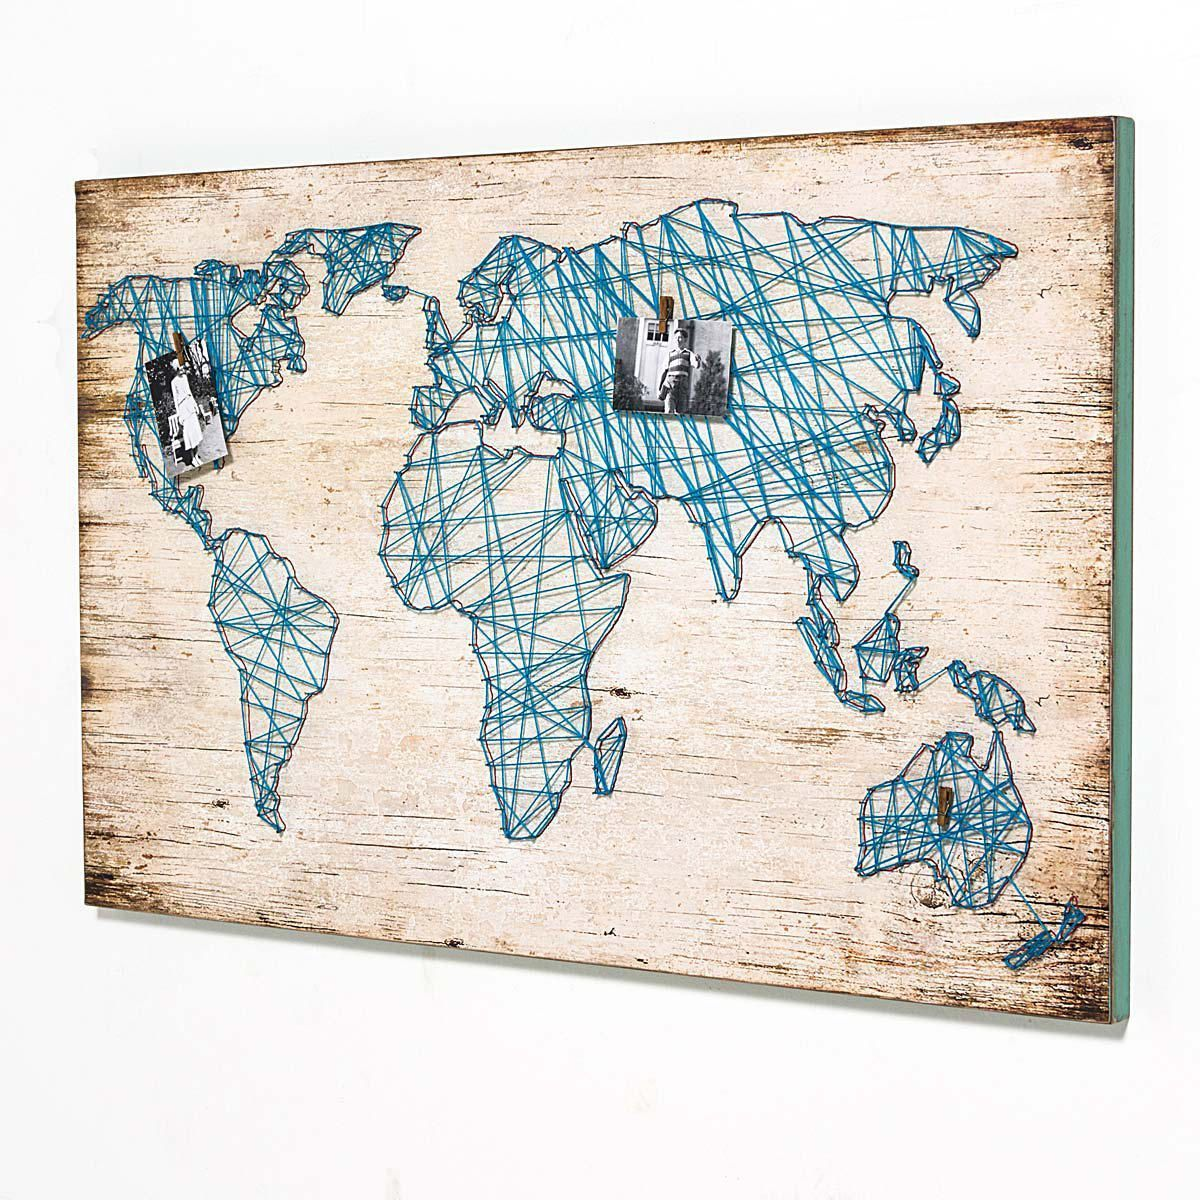 Wandbild travel mit weltkarte aus bindfaden bilder dekoration products i like pinterest - Diy deko jugendzimmer ...